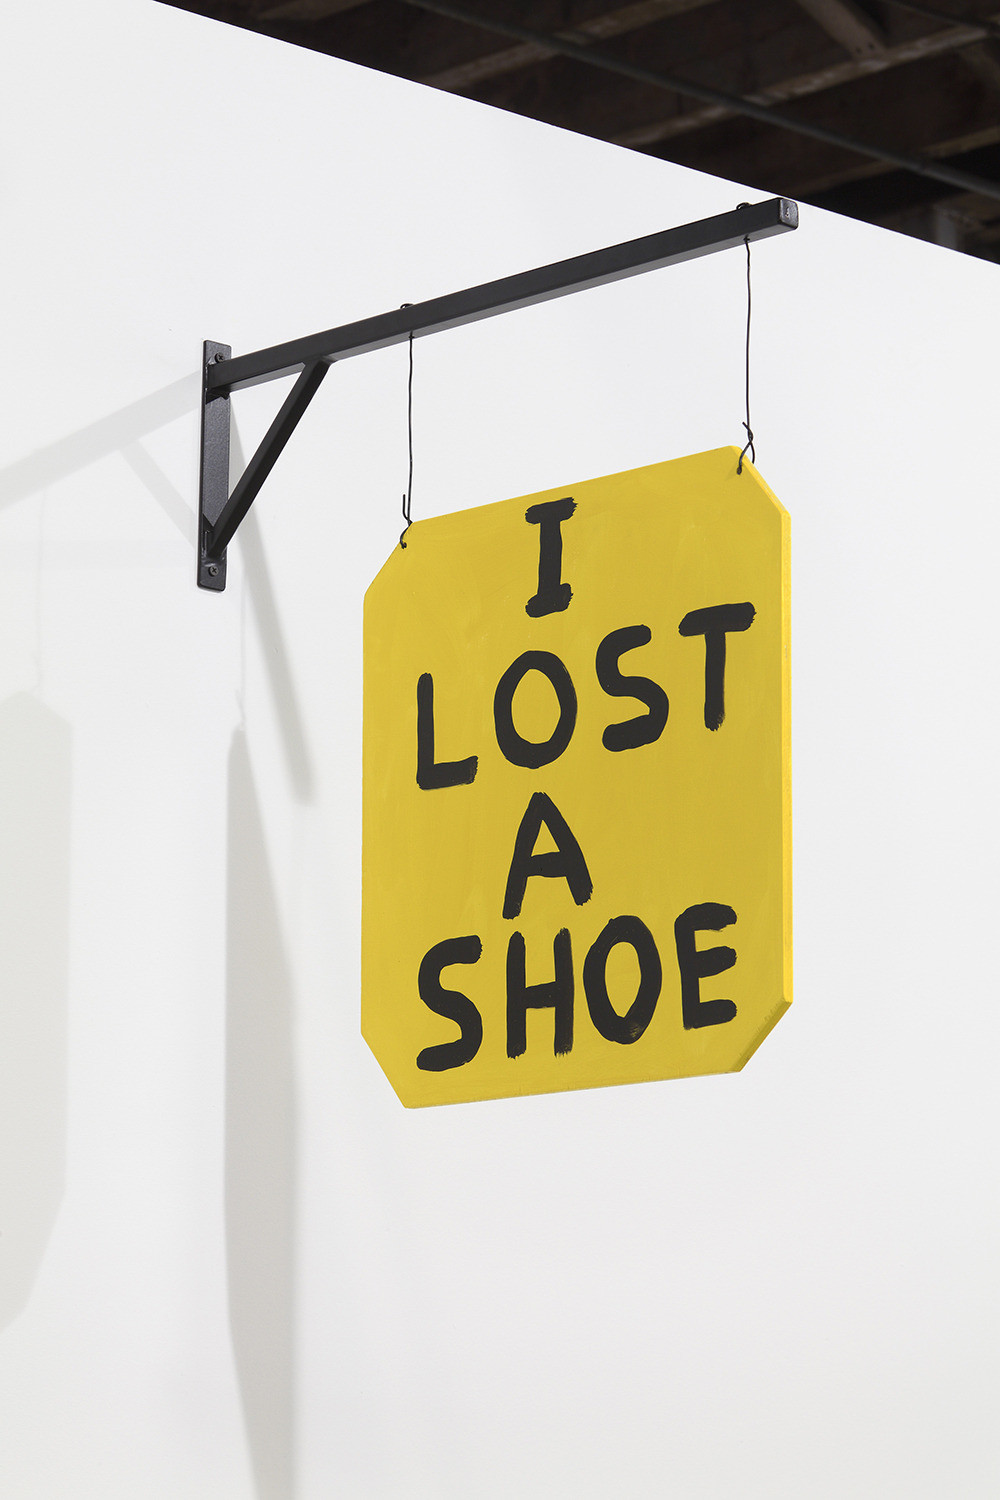 David Shrigley, I Found a Shoe, 2012, Acrylic on plywood with steel armature, 16 1/2 x 16 1/2 x 1/4 inches (sign), Courtesy Anton Kern Gallery, New York